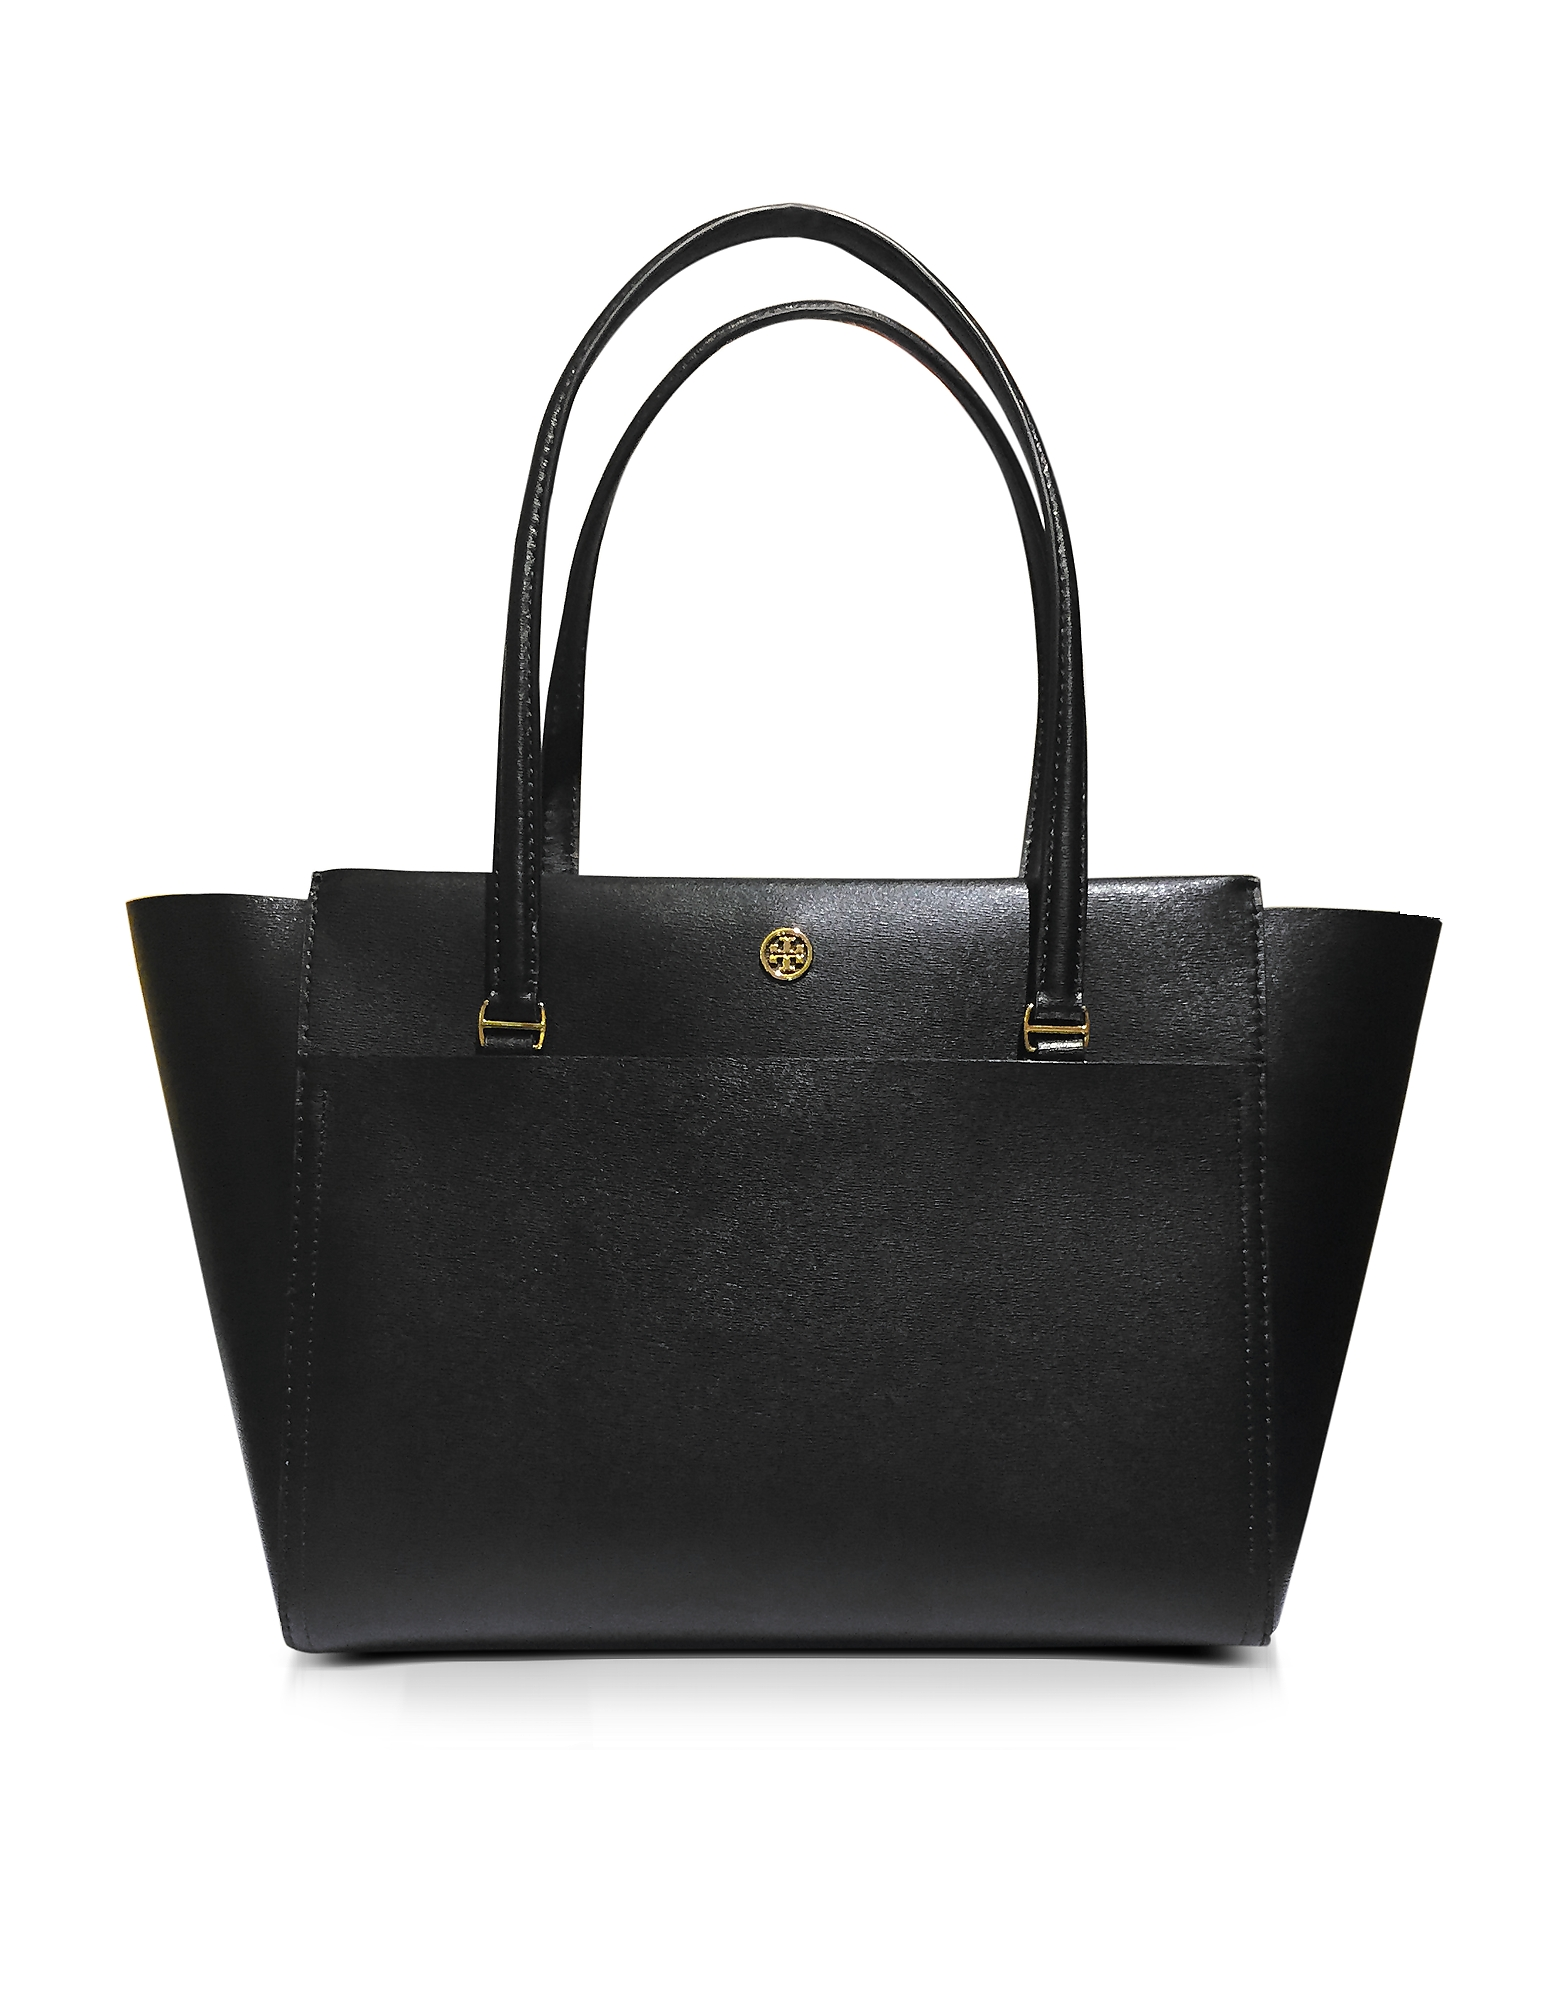 Tory Burch Handbags, Parker Small Leather Tote Bag